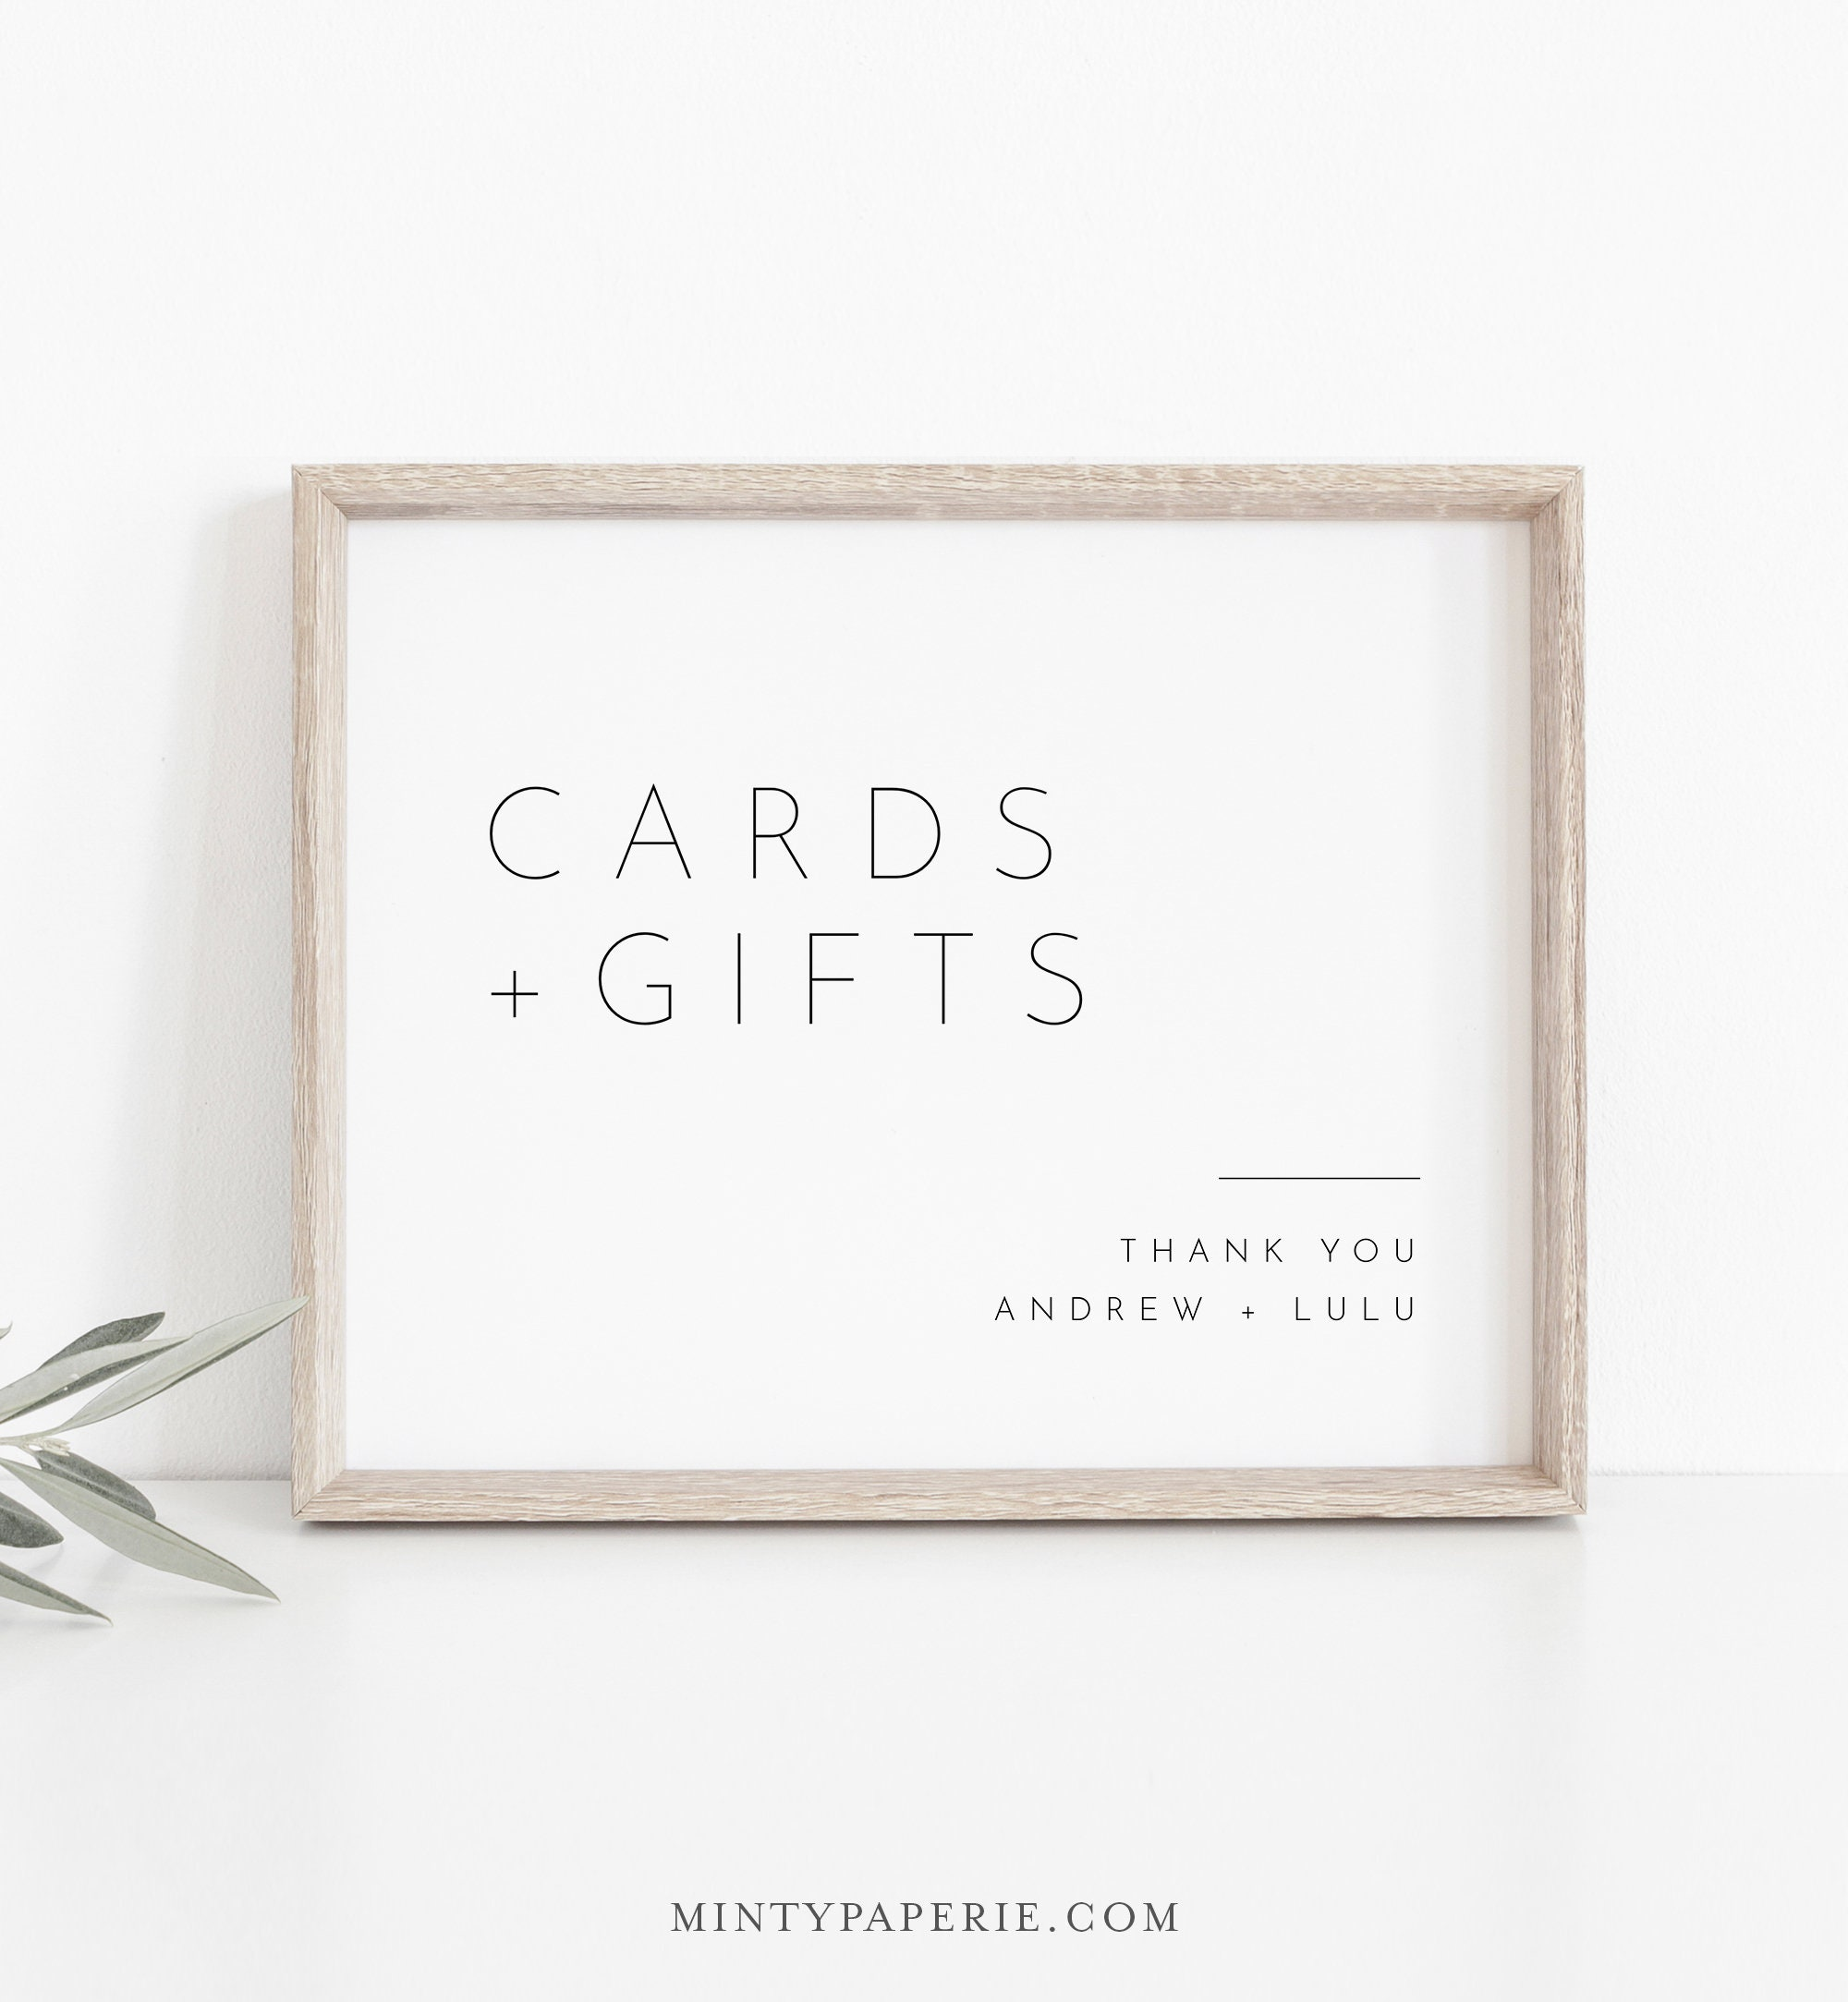 Wedding Decor Templett Cards And Gifts Template Modern Casual #vmt810 Scandinavian Fully Editable Downloadable Unlimited DIY Signs